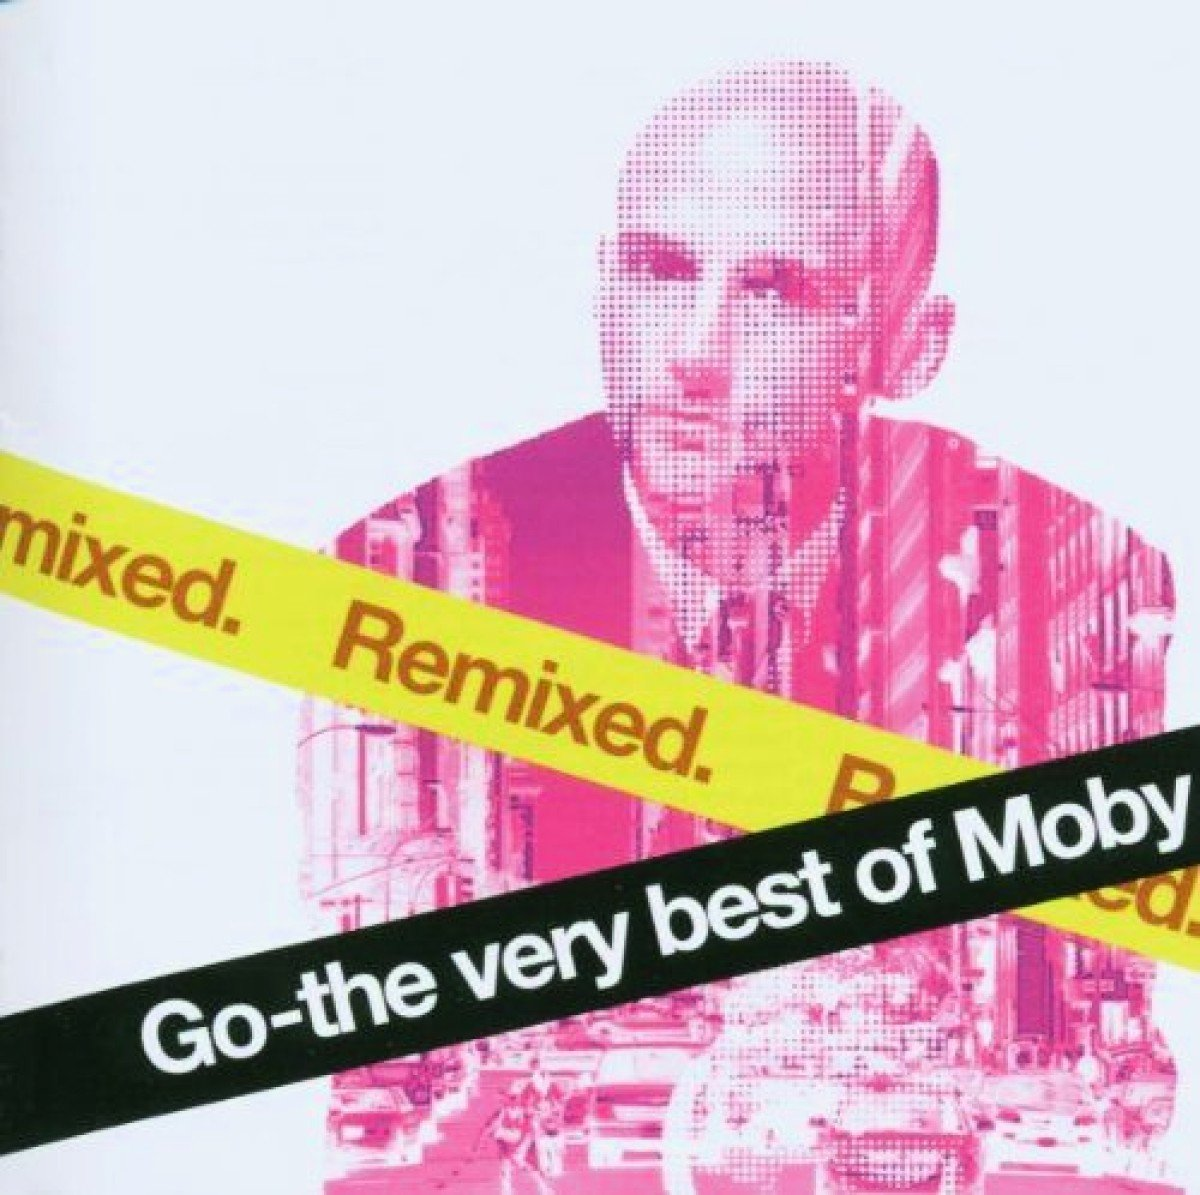 Go Very Best Moby Remixed Image 1